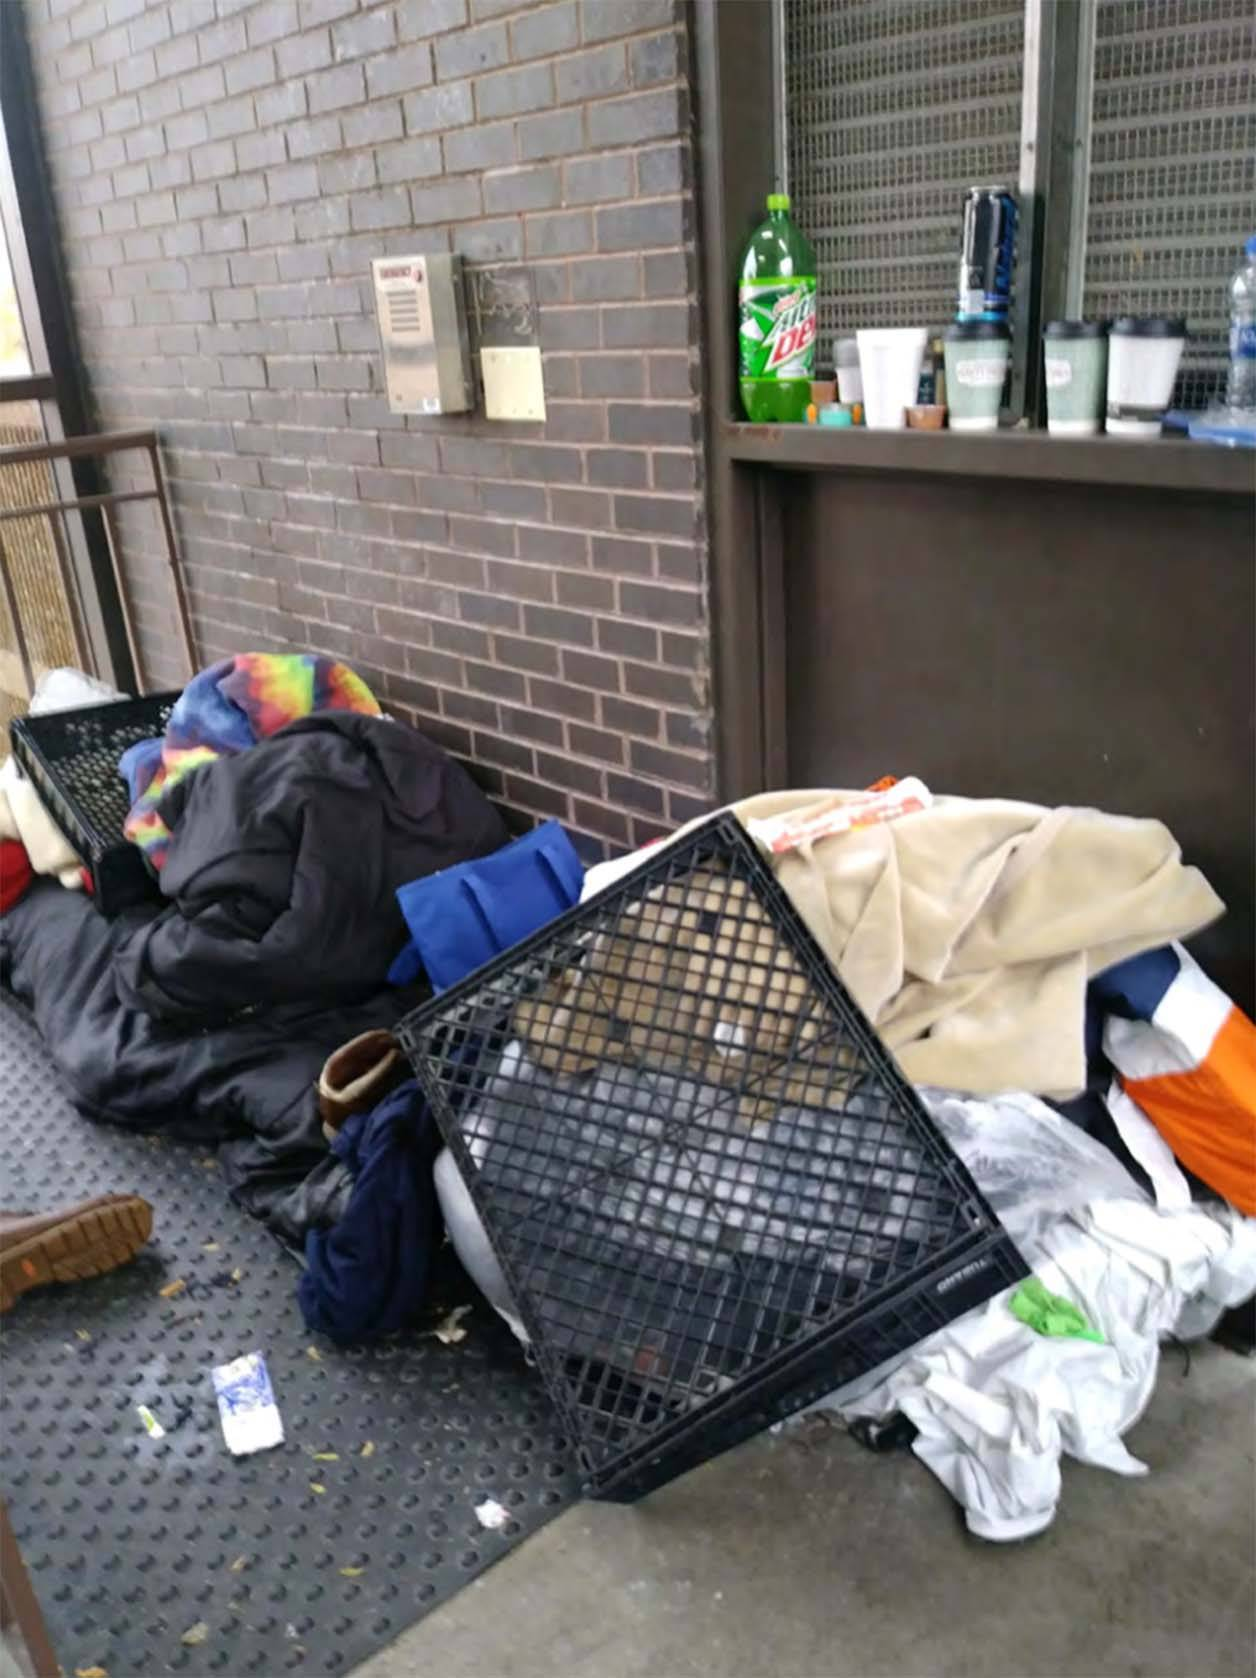 Homeless people increasingly have been leaving their belongings in public places in Elgin, including parking garage stairwells.